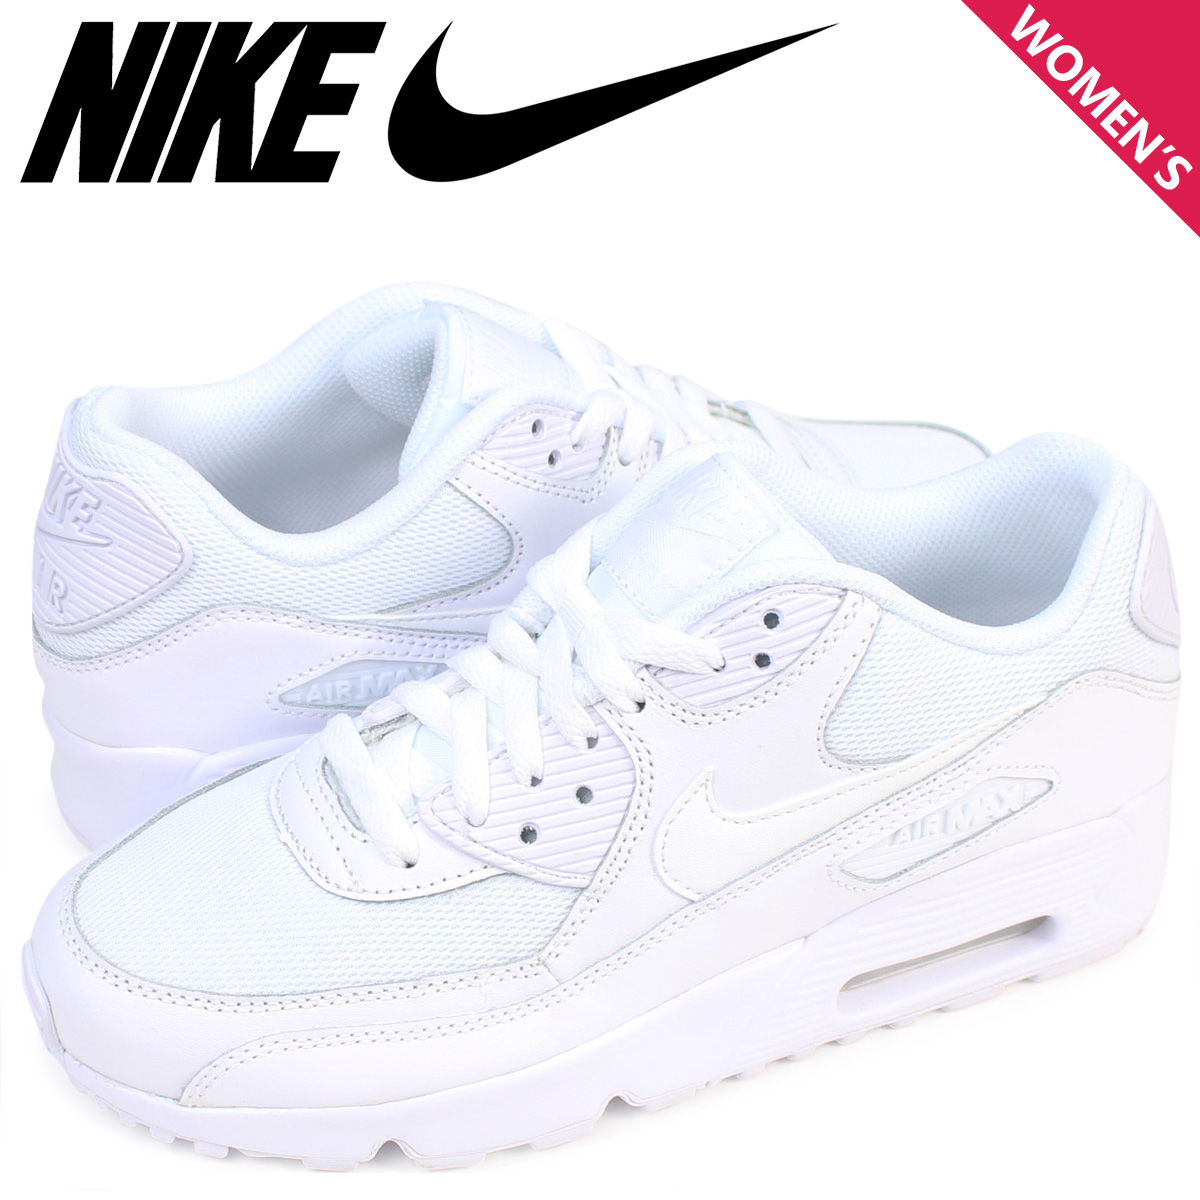 Nike NIKE Air Max 90 Lady's sneakers AIR MAX 90 MESH GS 833,418 100 shoes white [624 Shinnyu load]